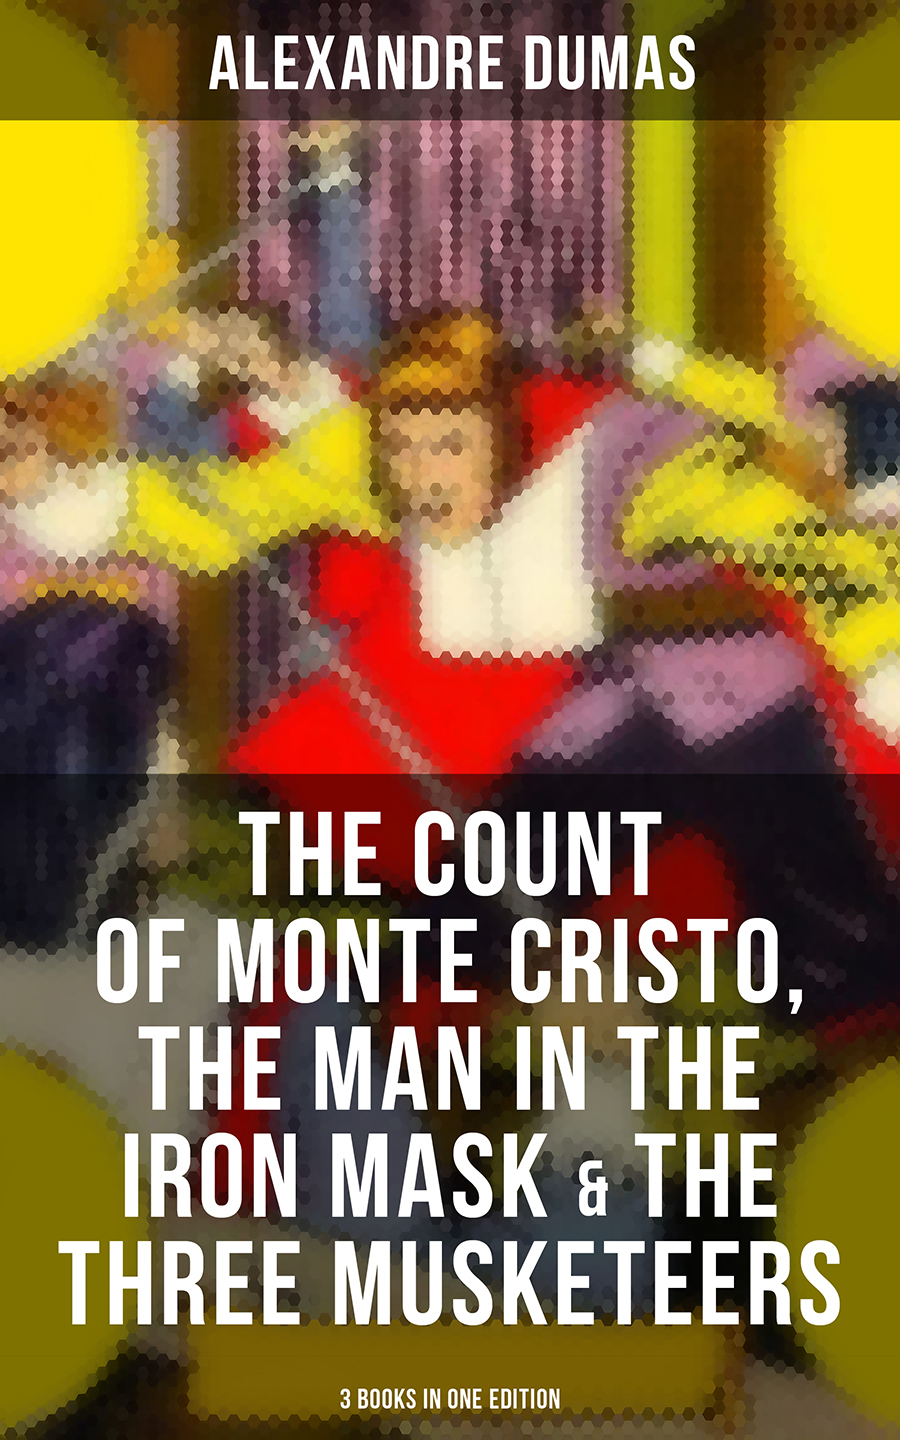 Alexandre Dumas The Count of Monte Cristo, The Man in the Iron Mask & The Three Musketeers (3 Books in One Edition) the man in the queue